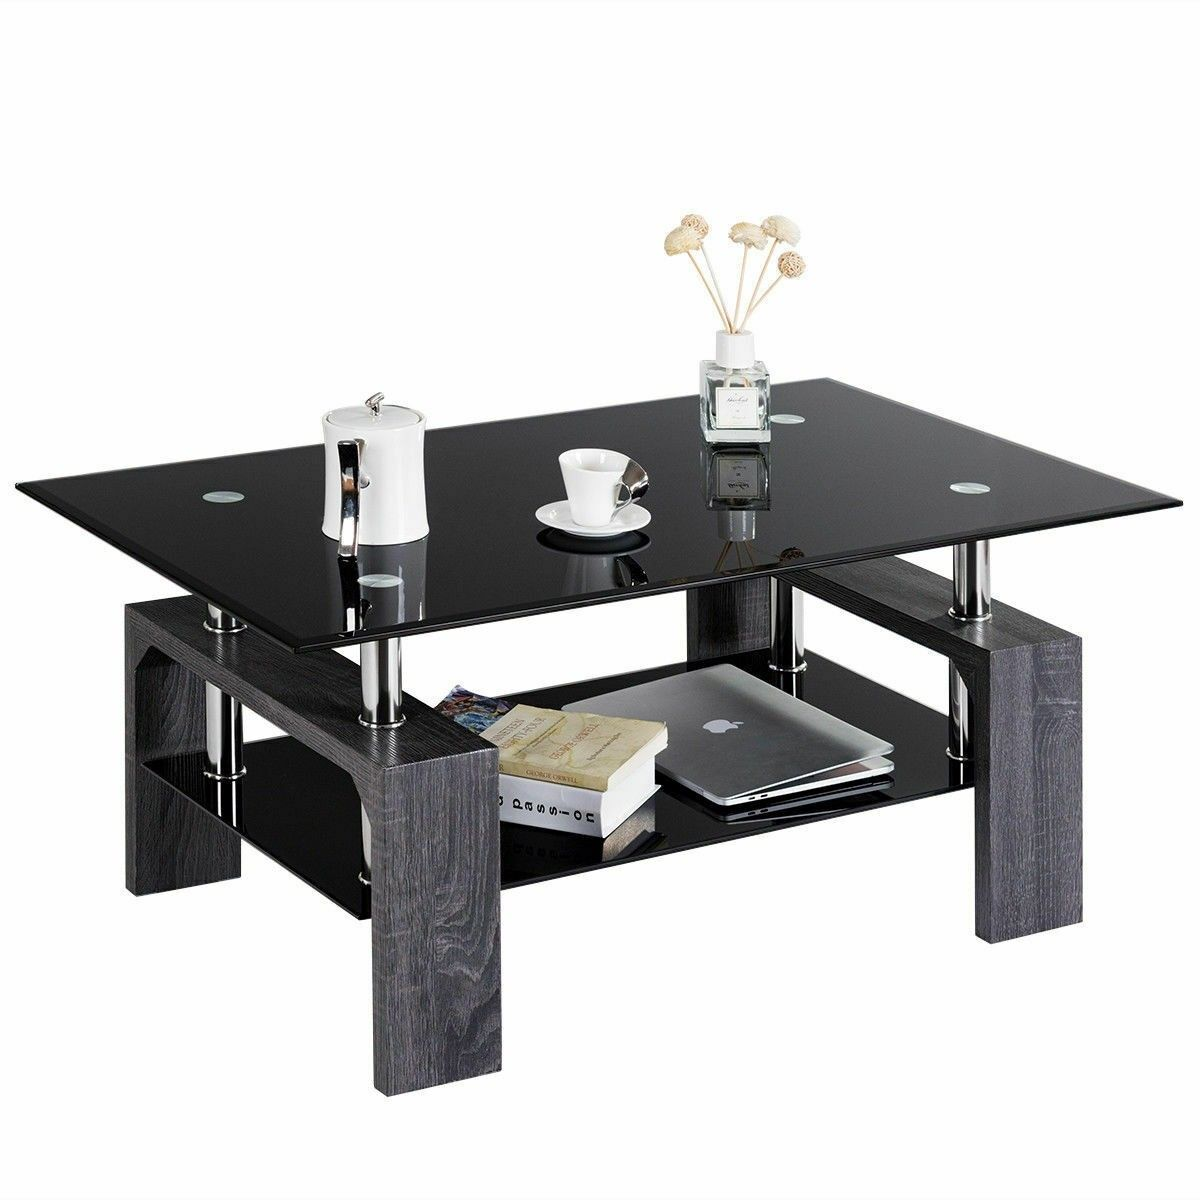 Rectangular Tempered Glass Coffee Table With Shelf Coffee Table